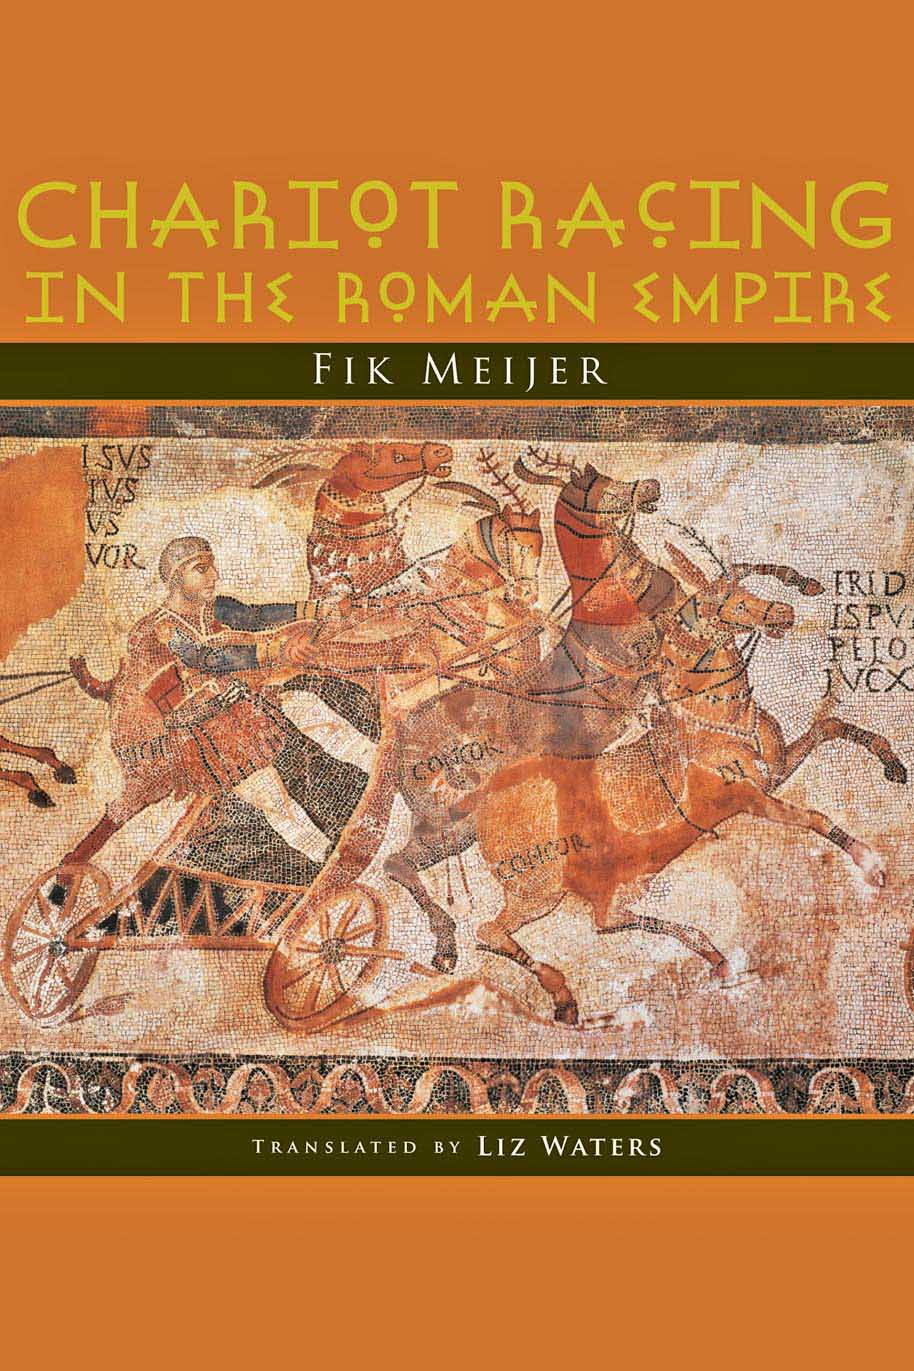 Chariot Racing in the Roman Empire chariot